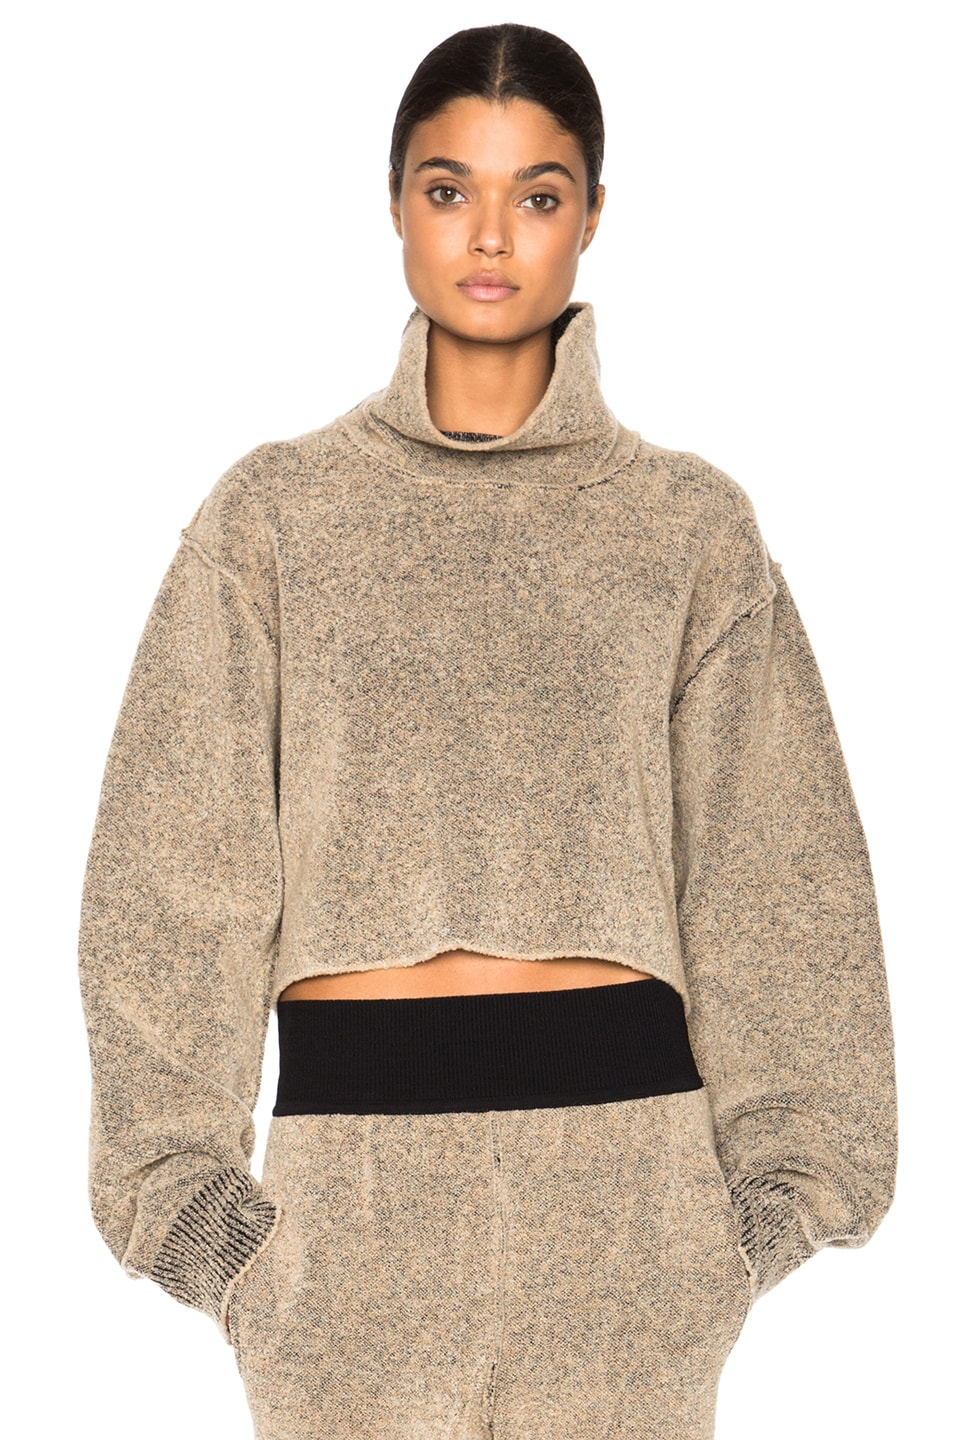 Kanye West x Adidas Originals Cropped Boucle Sweater in Brown | FWRD